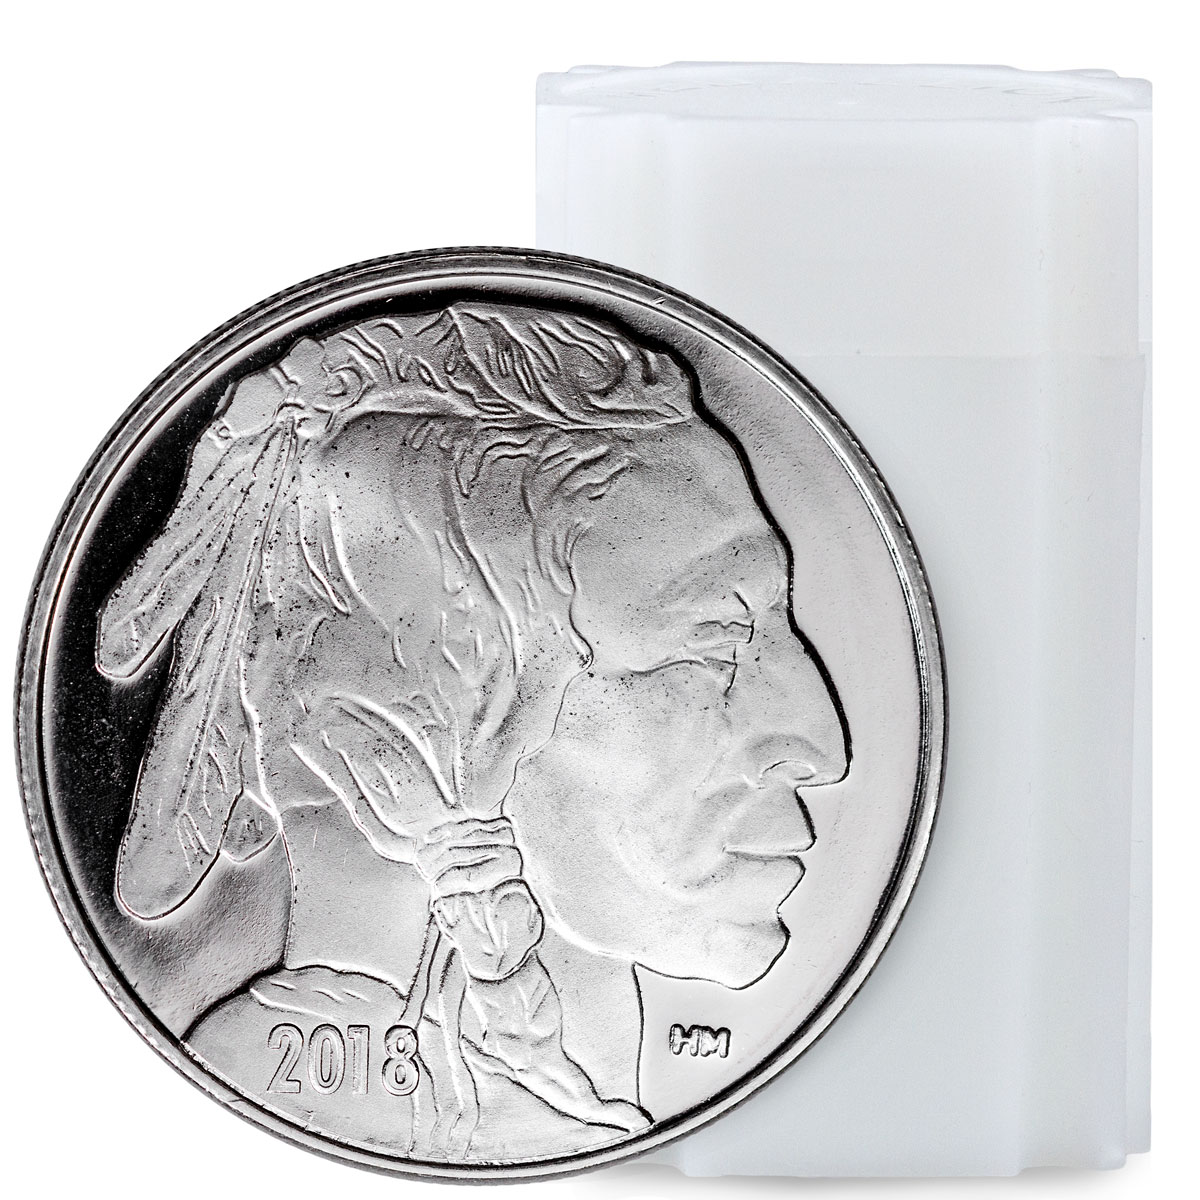 Roll of 20 - 2018 Highland Mint Buffalo Nickel Design 1 oz Silver Round